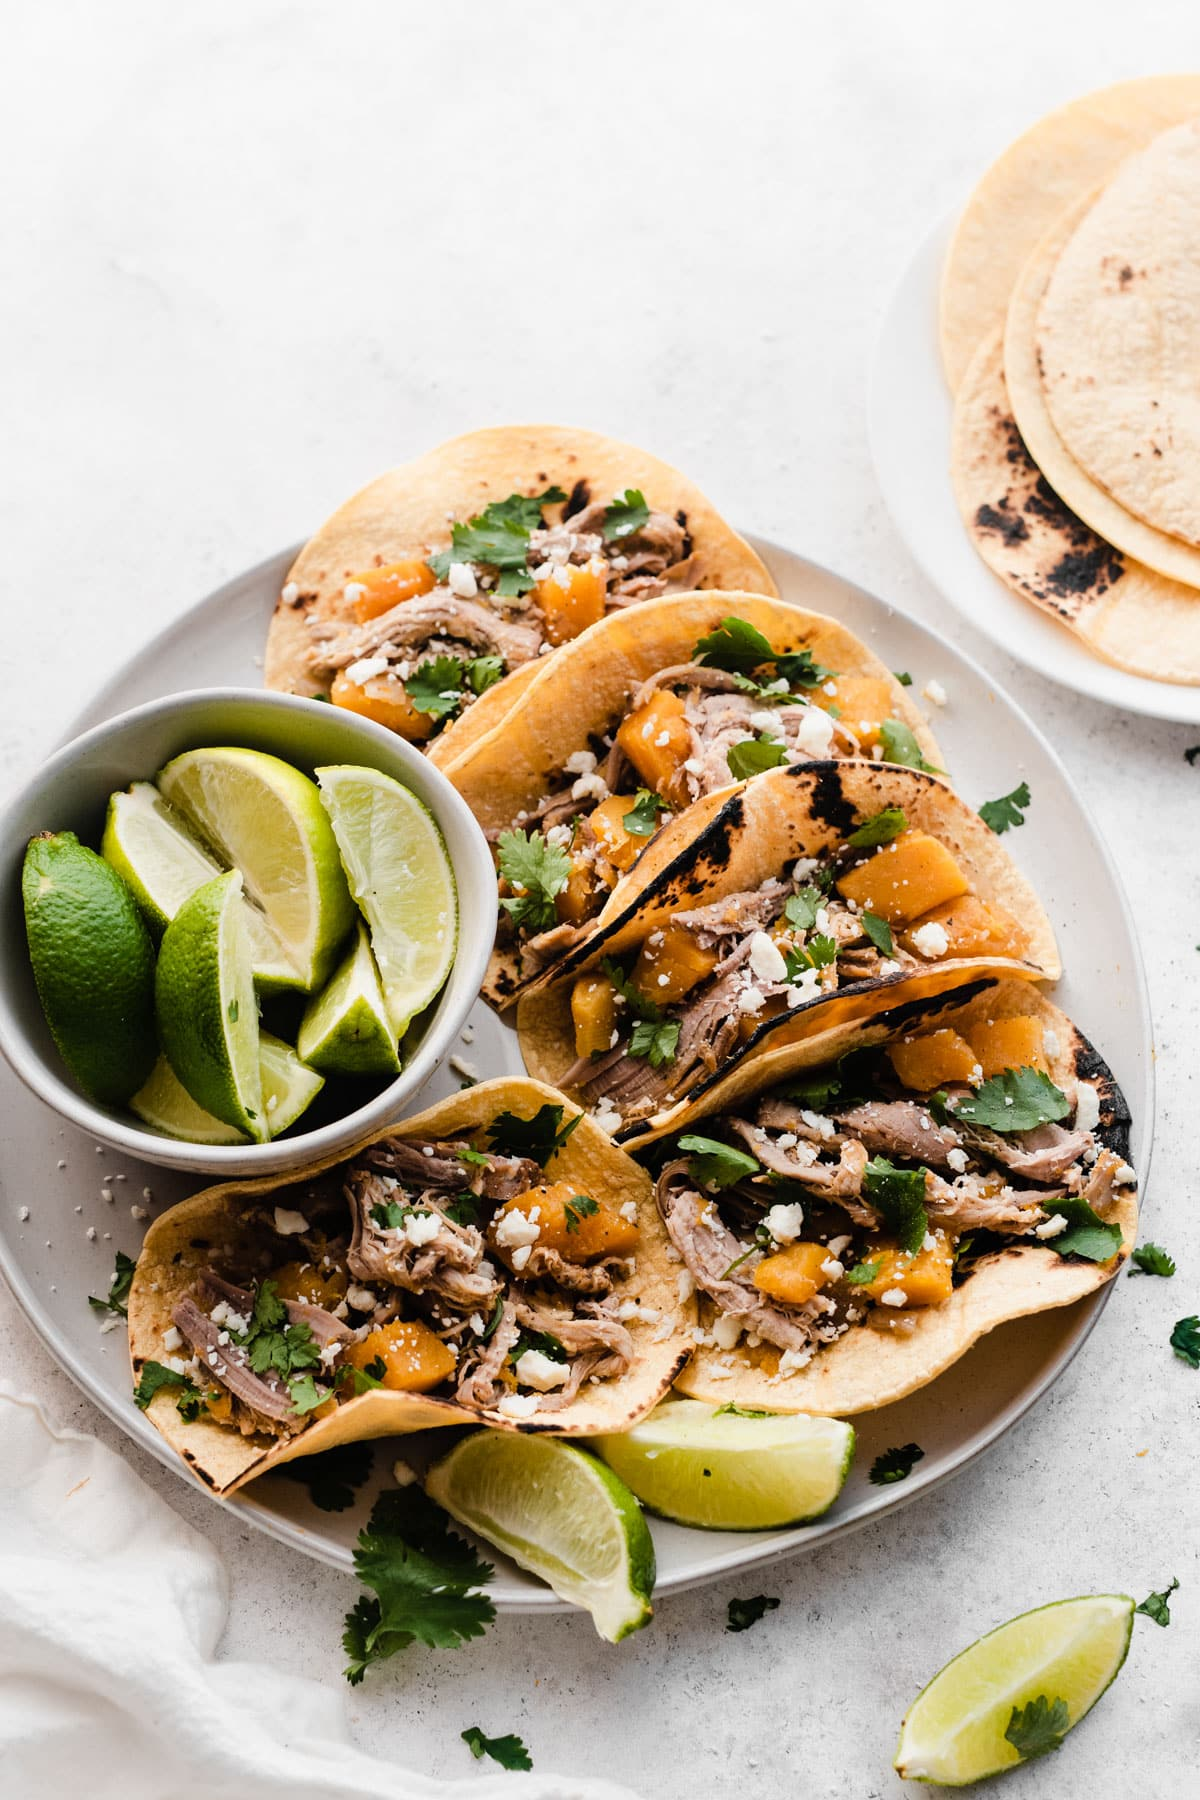 skillet of Butternut Squash and Pulled Pork Tacos made in a slow cooker